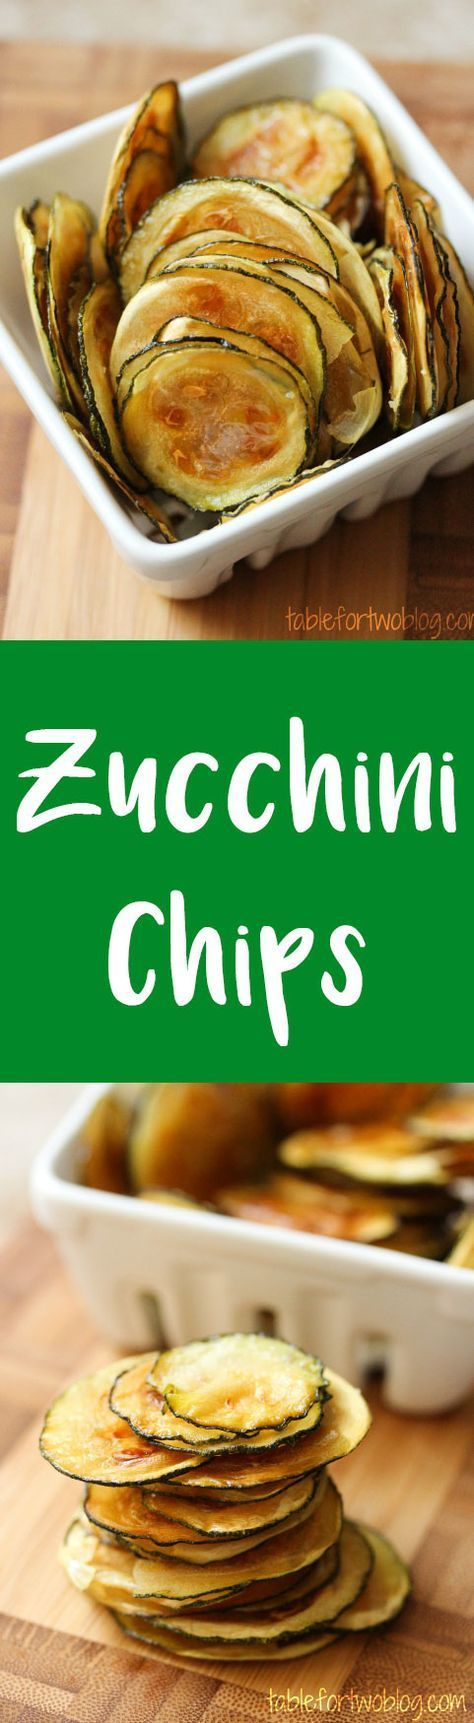 zucchini chips 1 large zucchini 2 tbsp. olive oil Kosher salt INSTRUCTIONS Bake 225 2 hrs